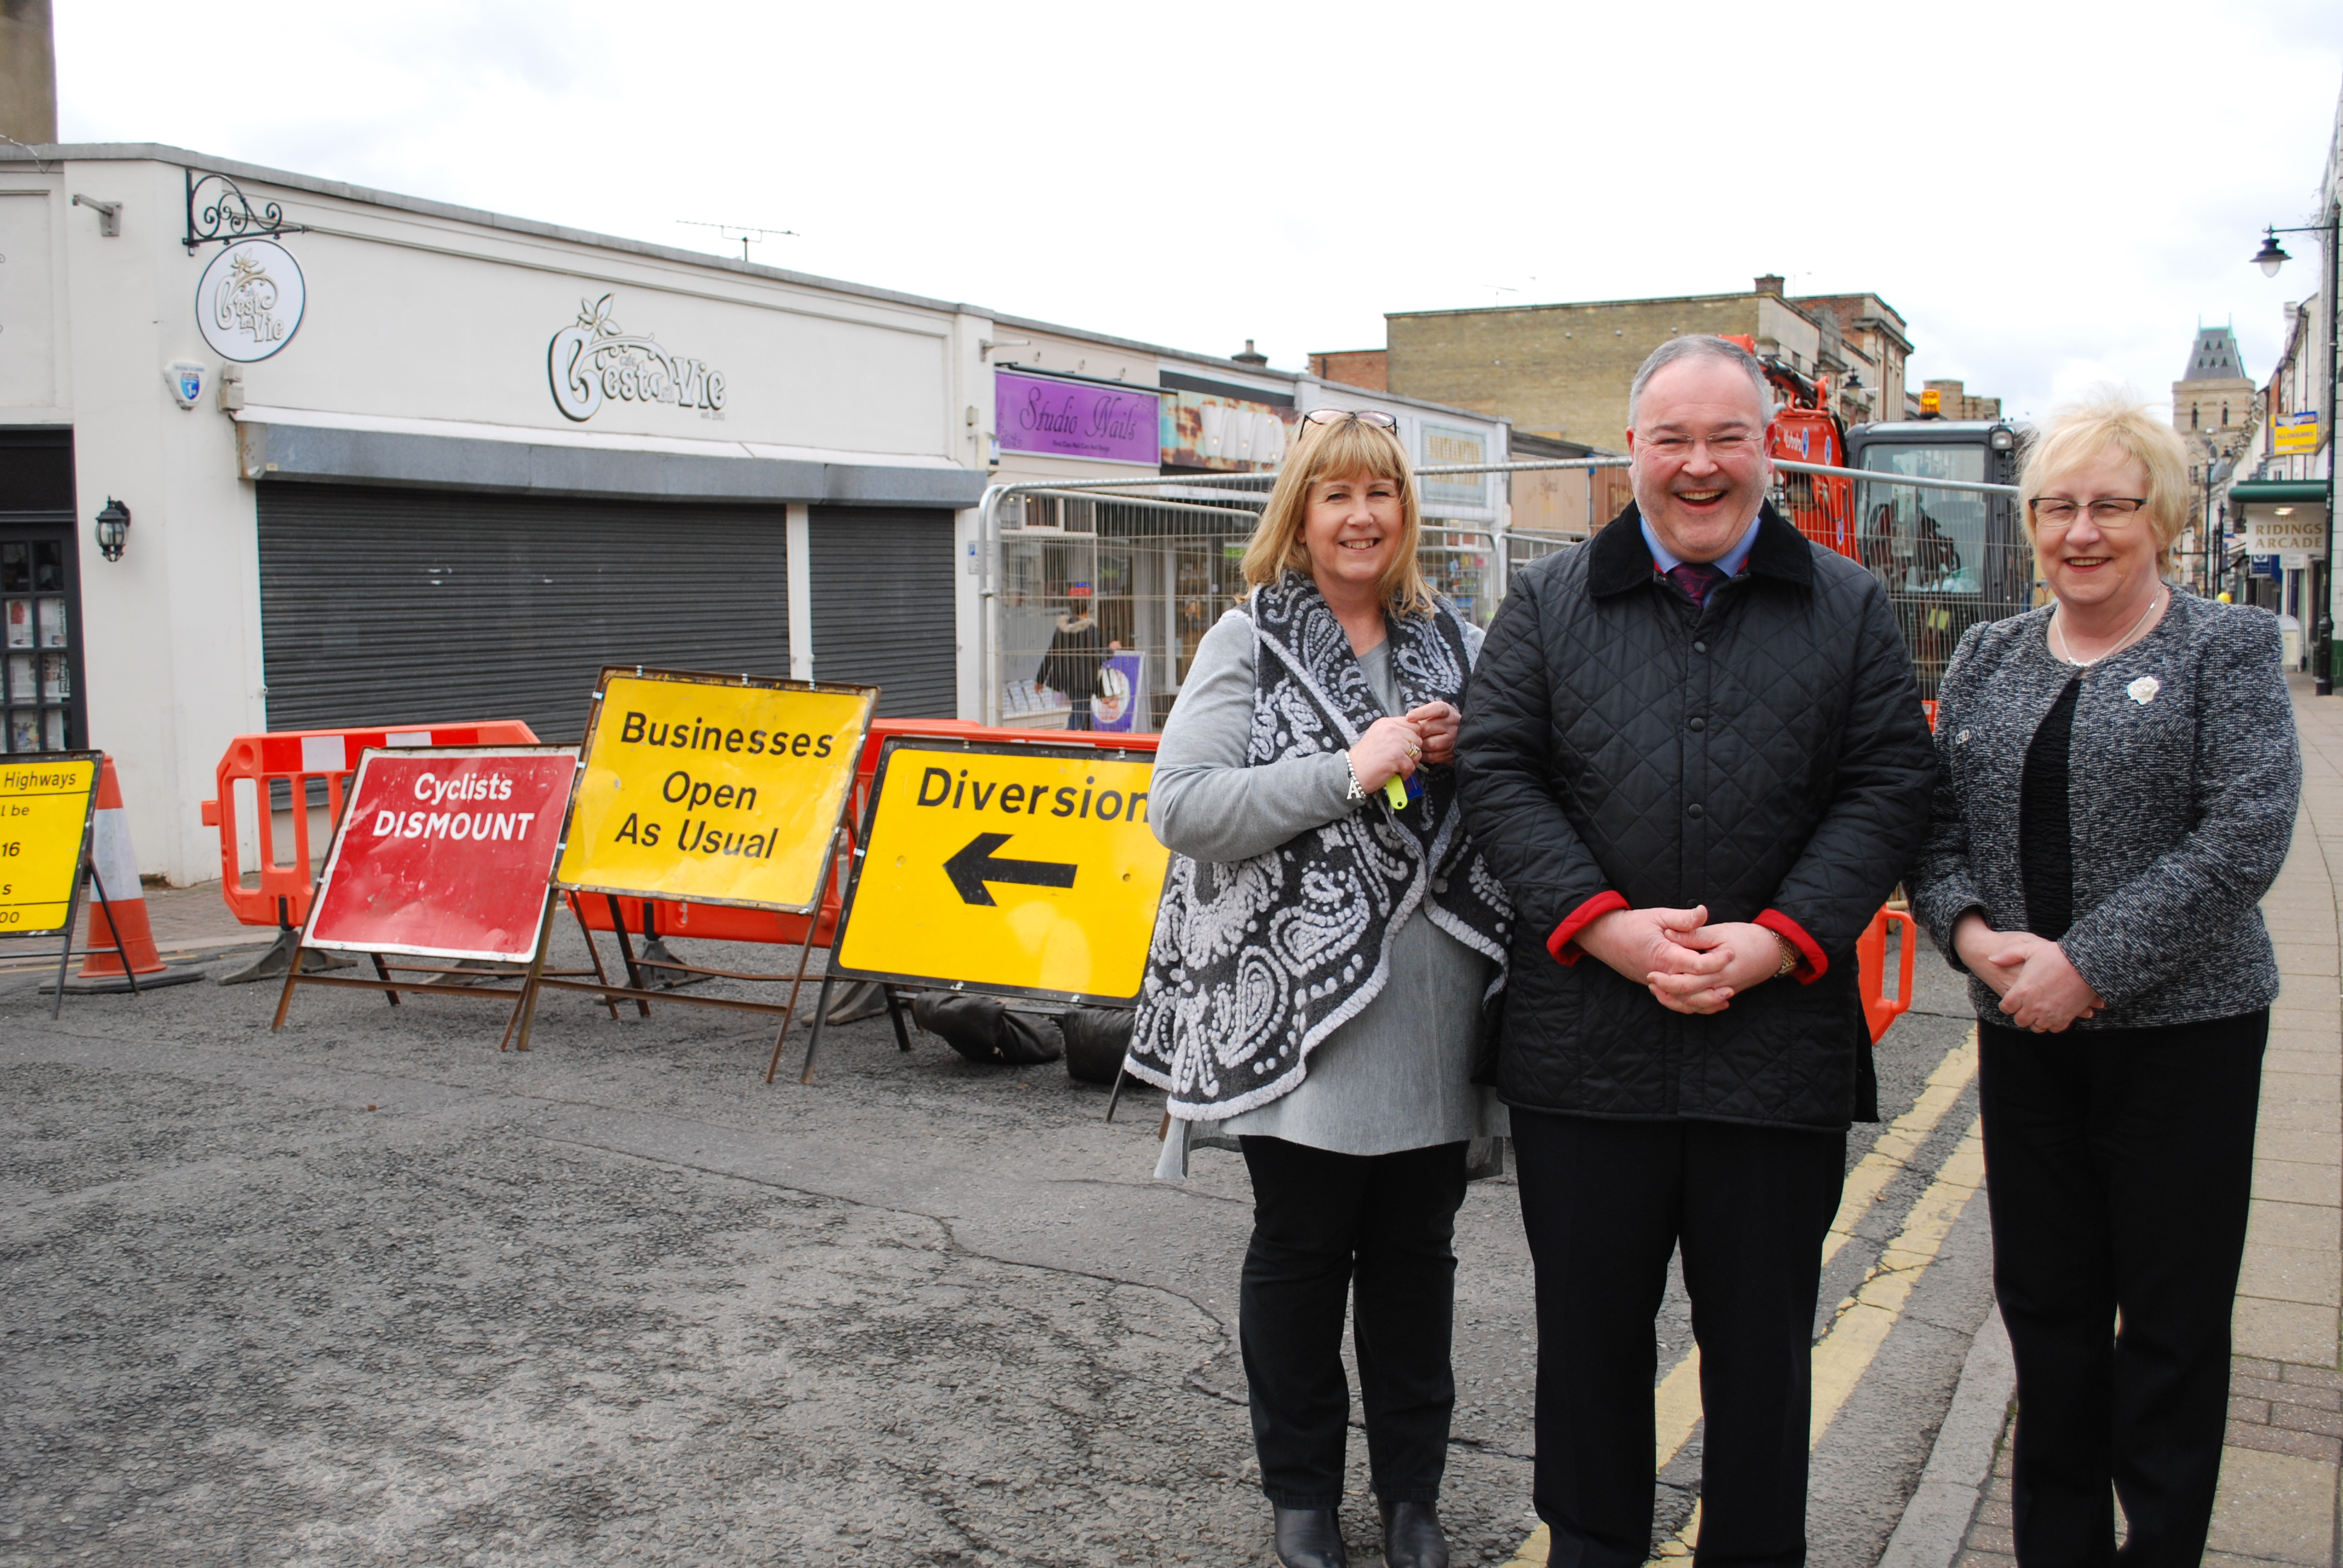 Cllr Mary Markham with Annie Rockley from Peppertrees and Jonathan Williams from Montague Jeffrey on St Giles Street.